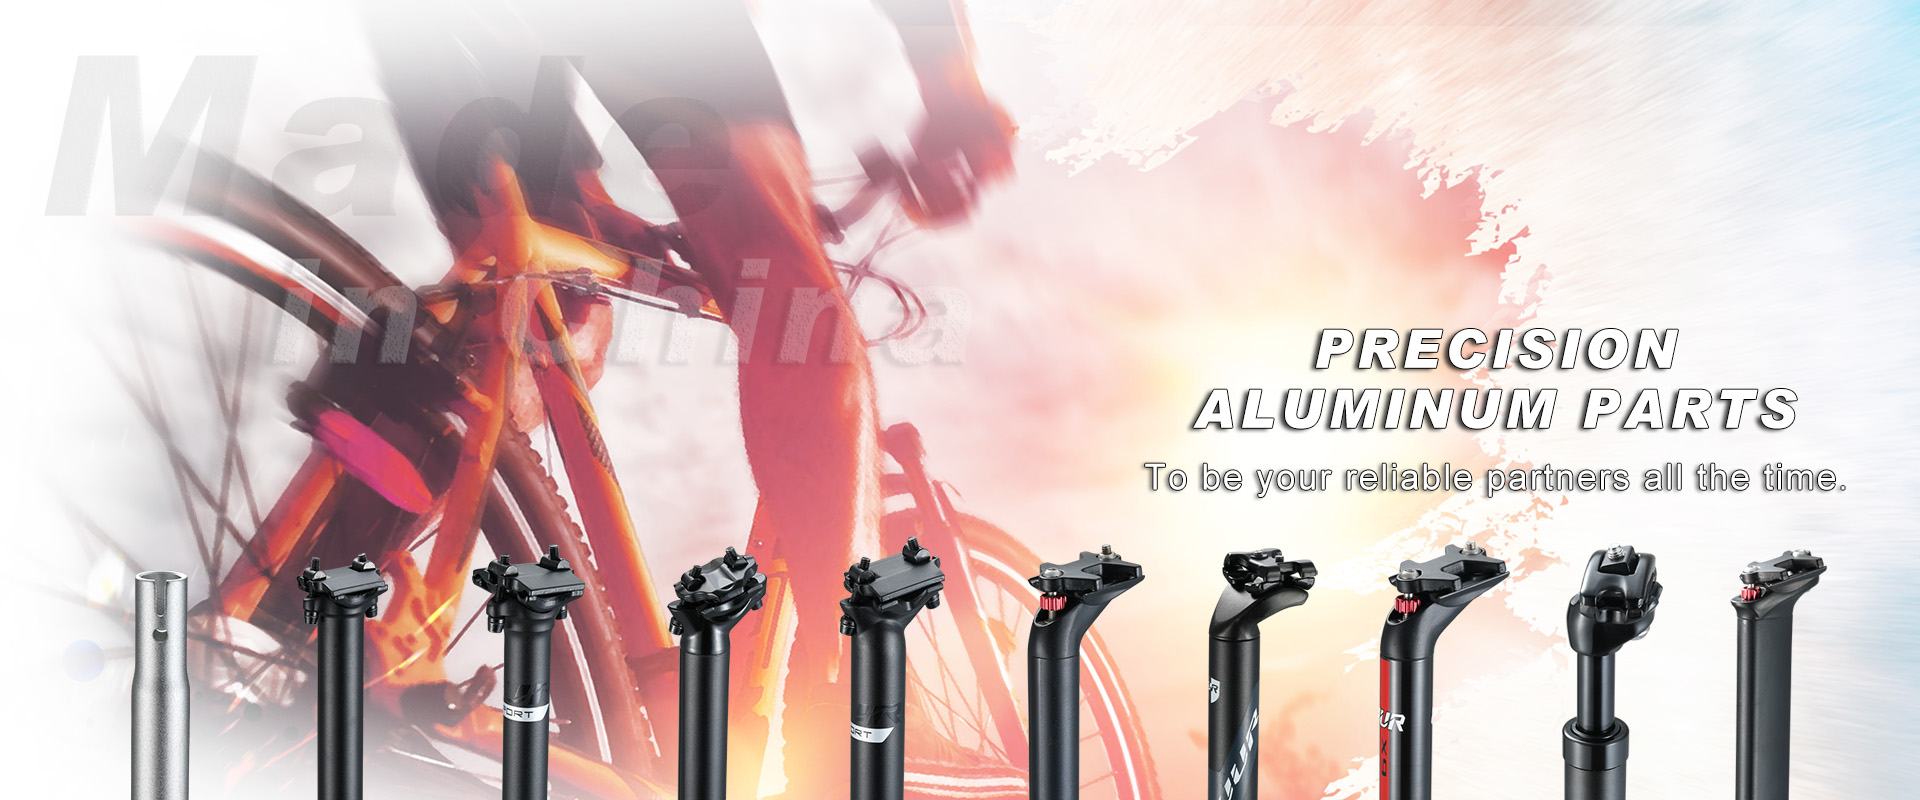 Seatpost 11Bicycle-